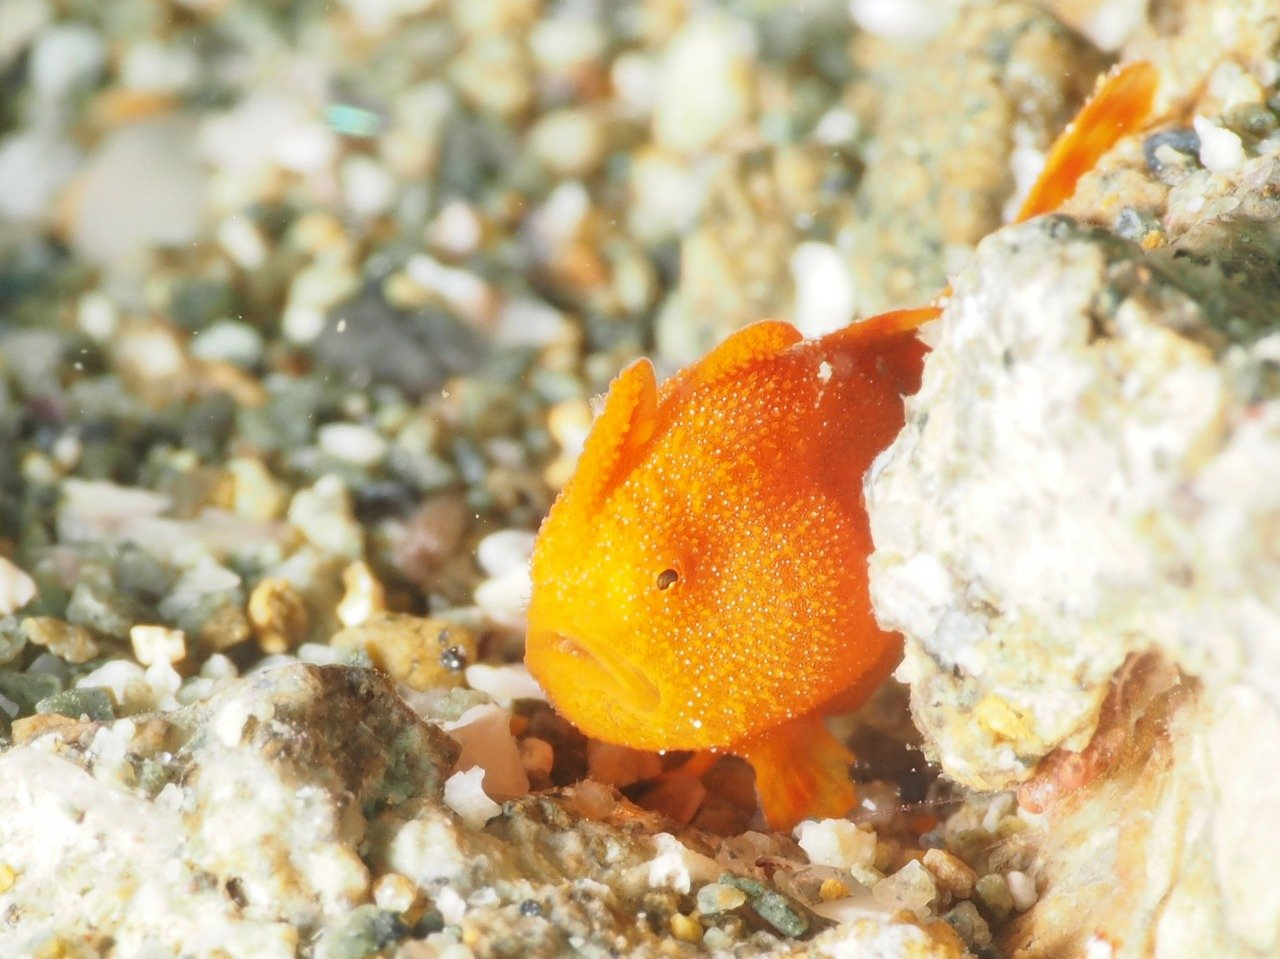 frogfish reproduction